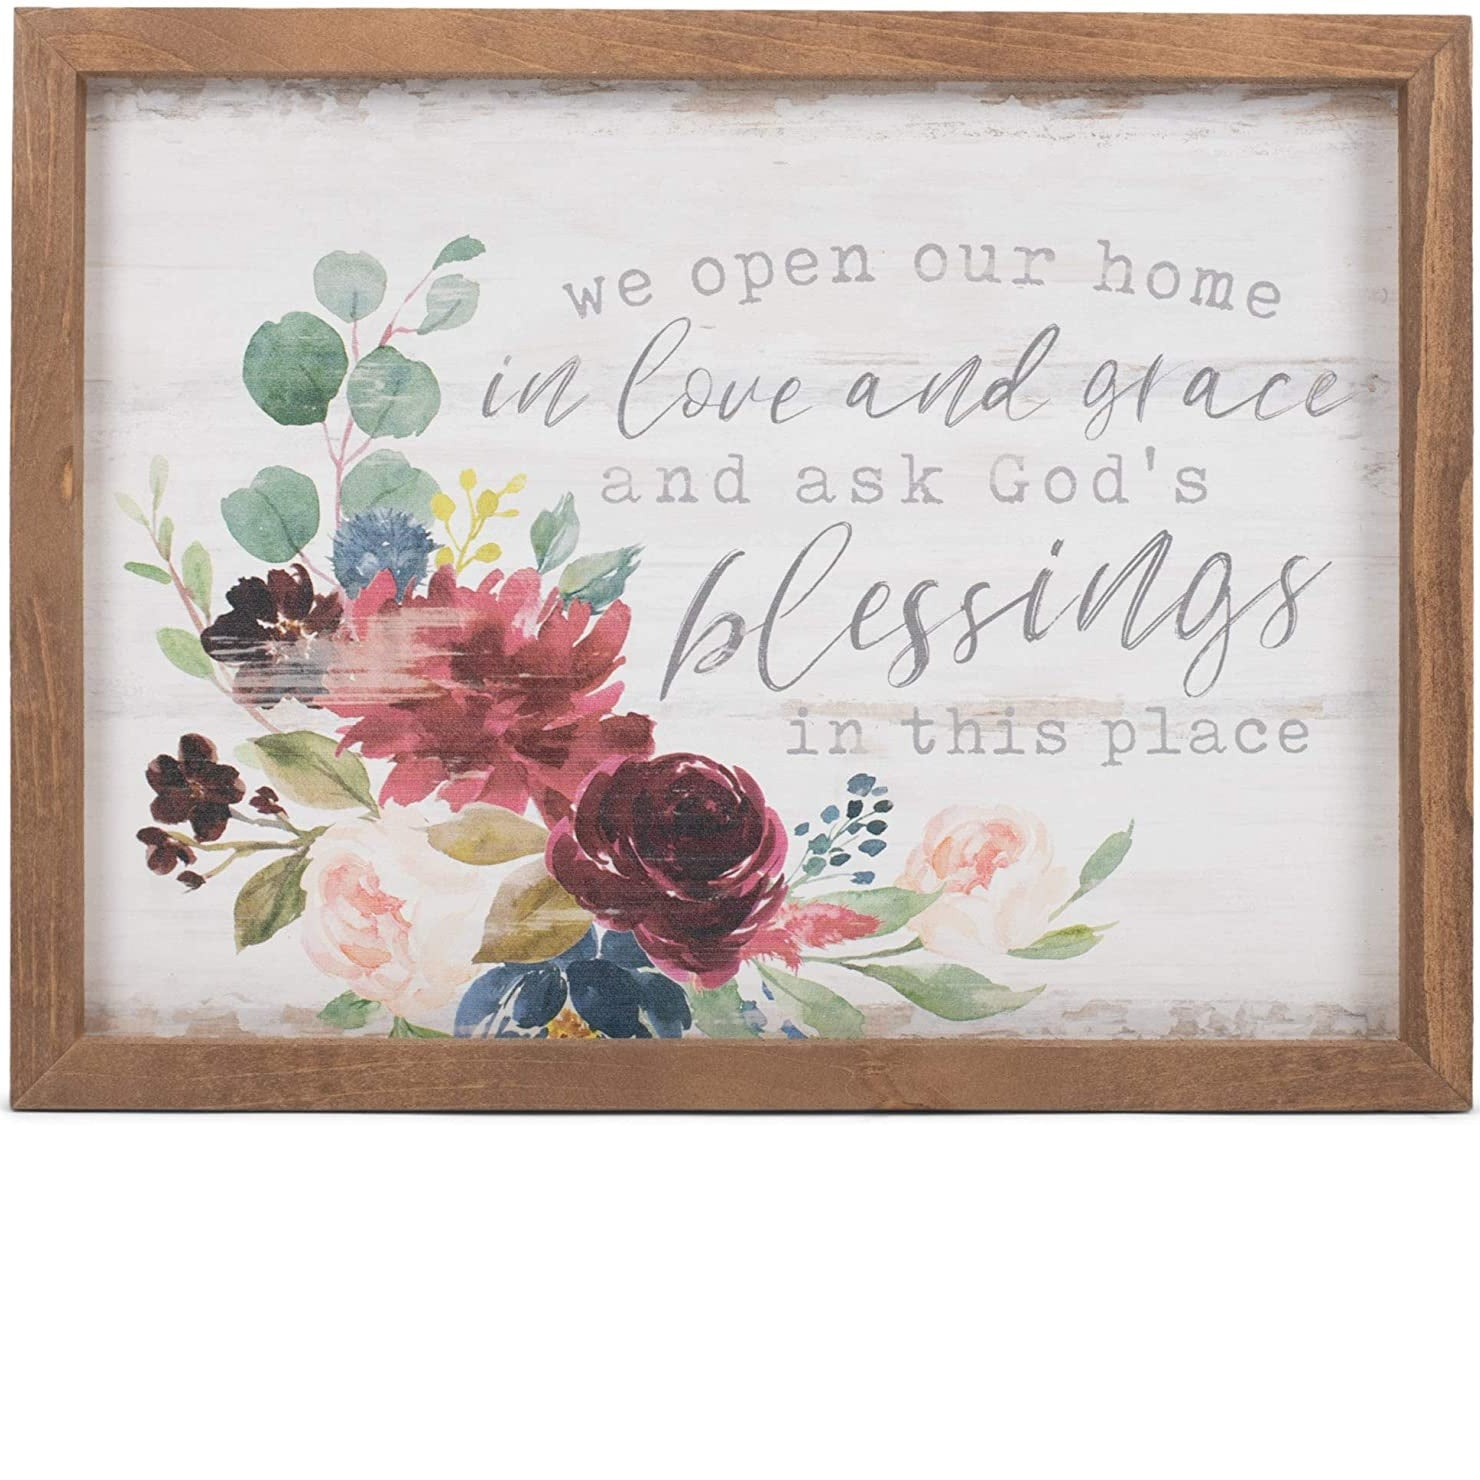 We open our home sign